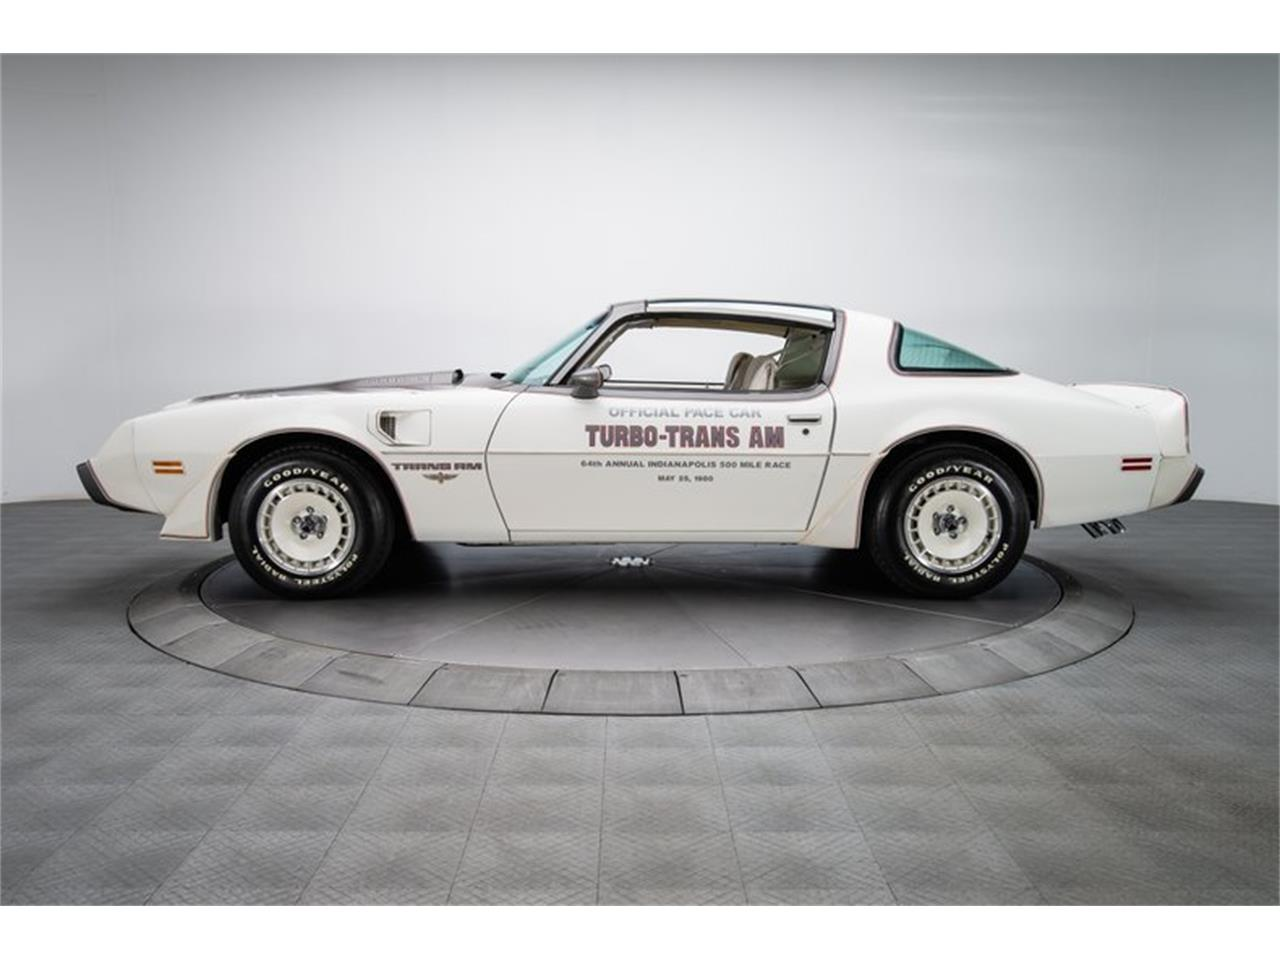 1980 Pontiac Firebird Trans Am Turbo Indy Pace Car Edition for sale in Charlotte, NC – photo 6